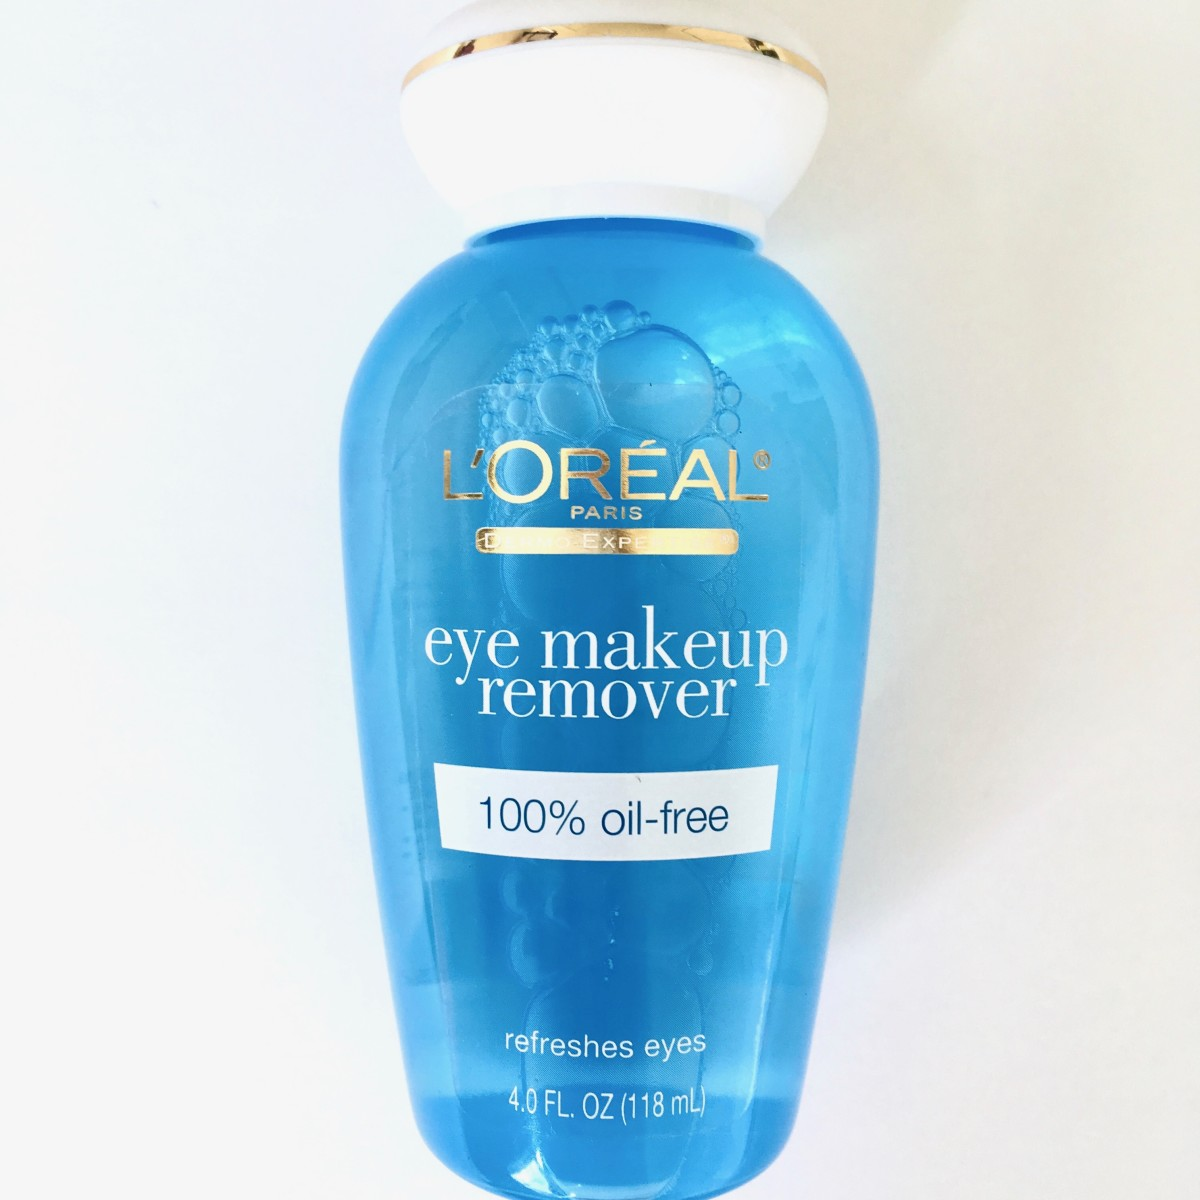 L'Oreal Paris Oil-Free Eye Makeup Remover